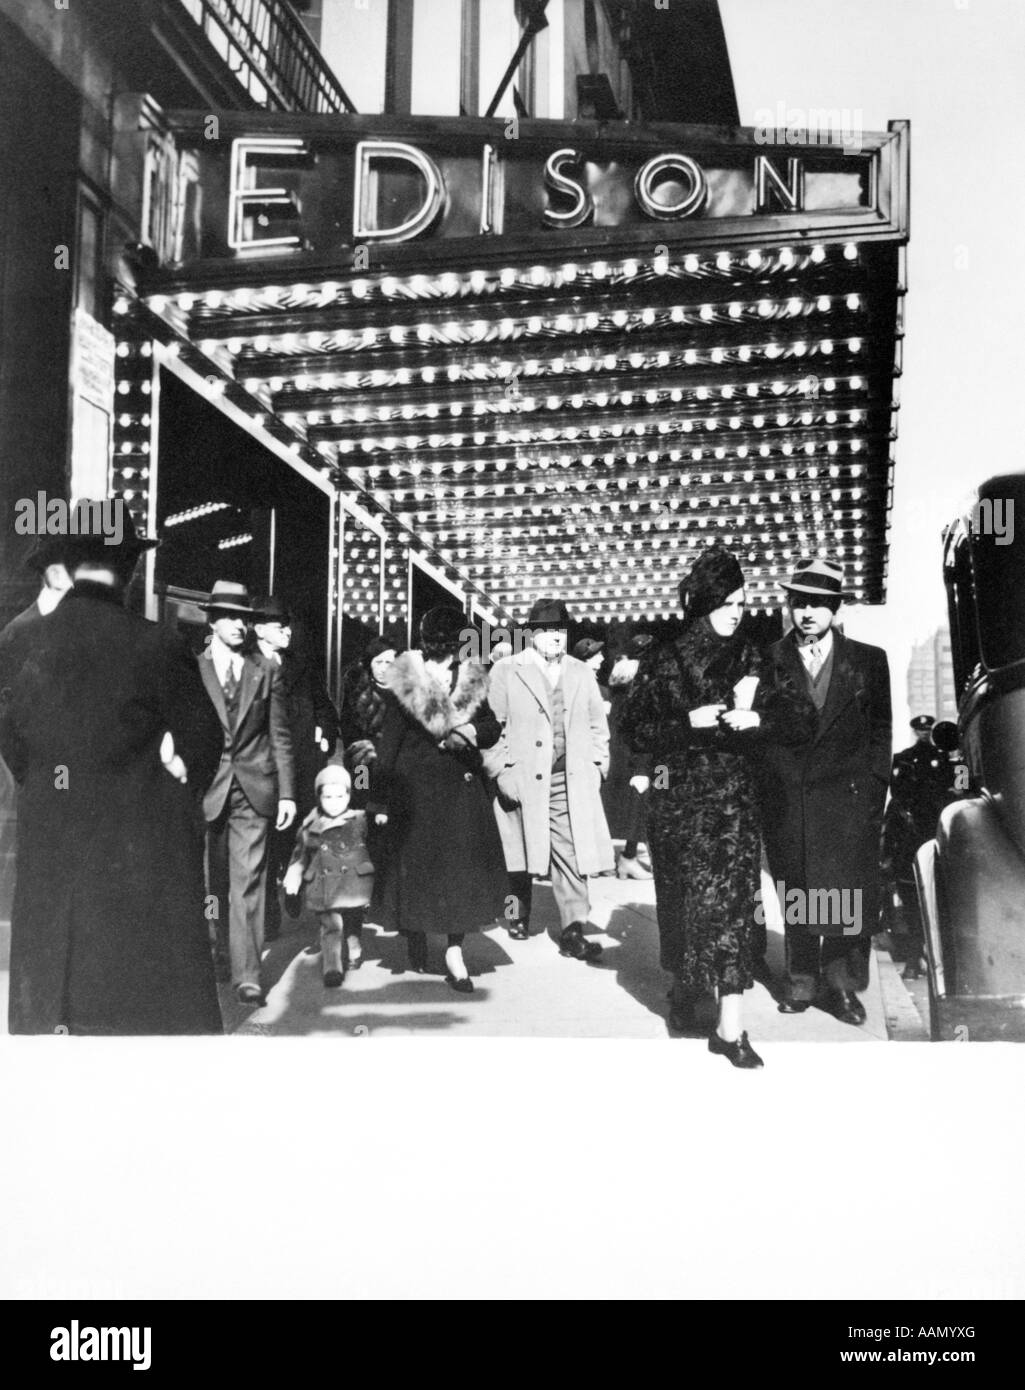 1930s PEDESTRIANS IN FRONT OF HOTEL EDISON MARQUEE NEW YORK CITY THEATER DISTRICT MANHATTAN WEST 47TH STREET - Stock Image